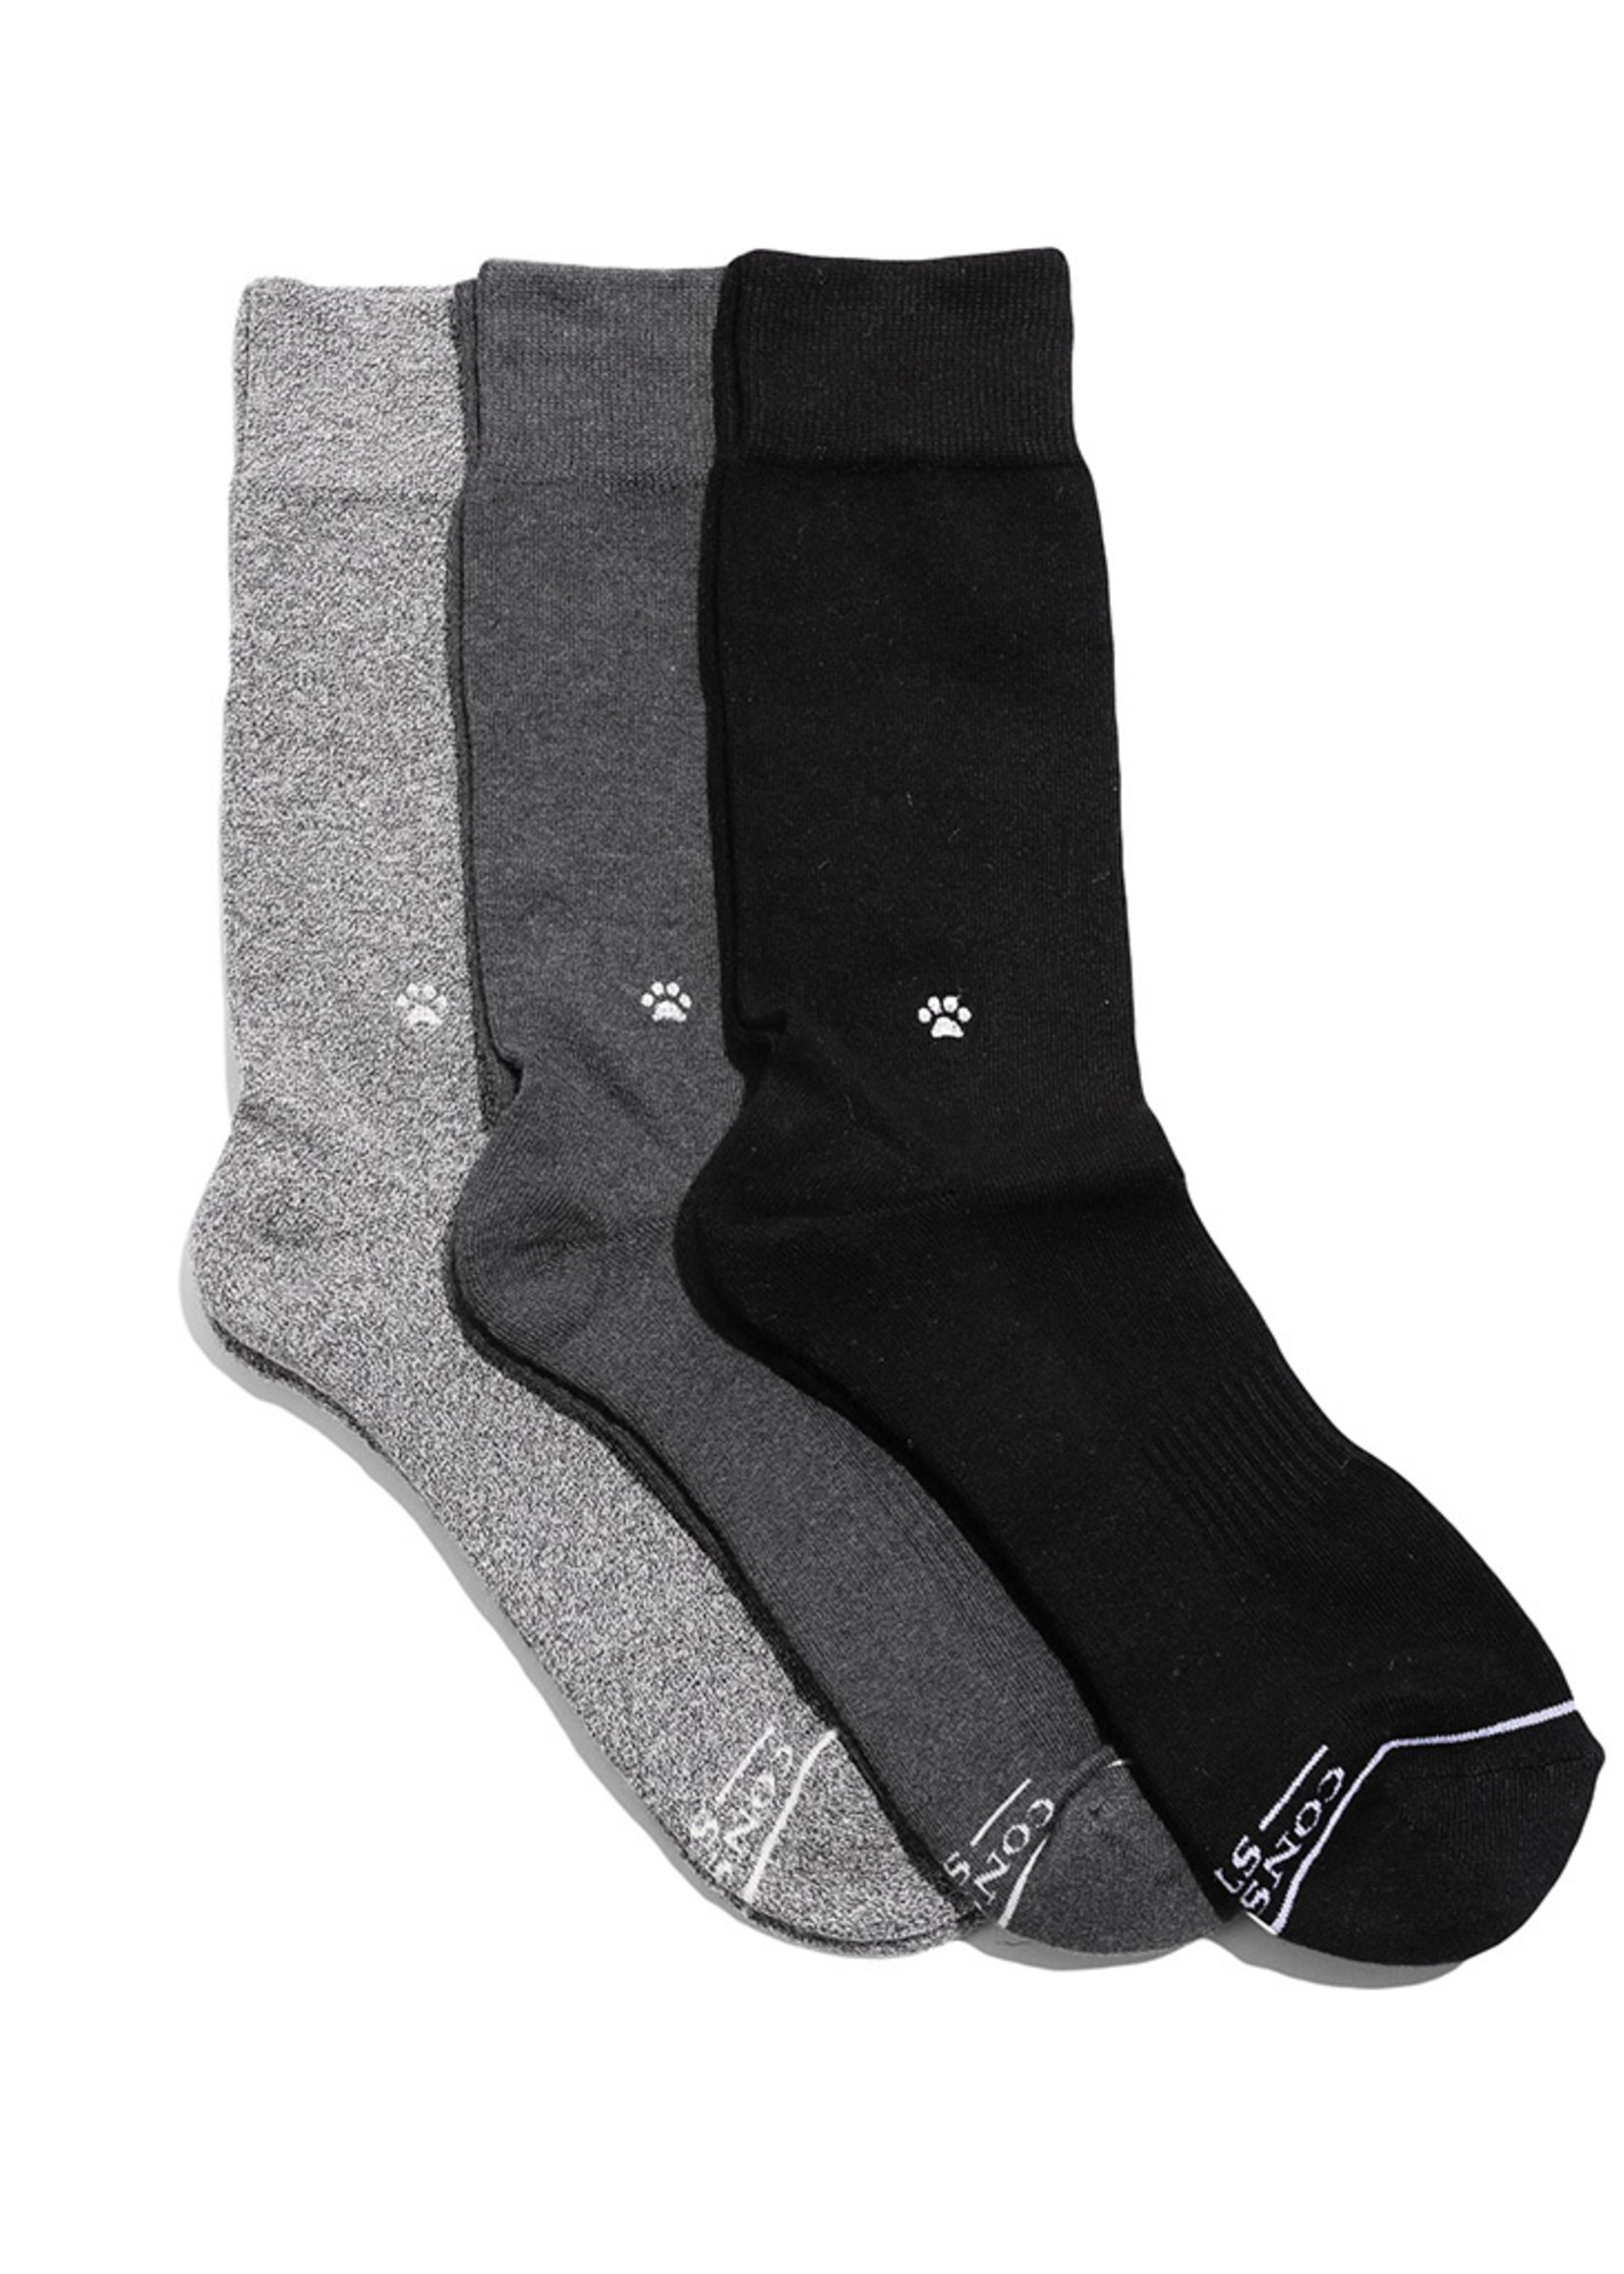 Conscious Step Women's Box of Socks That Save Dogs